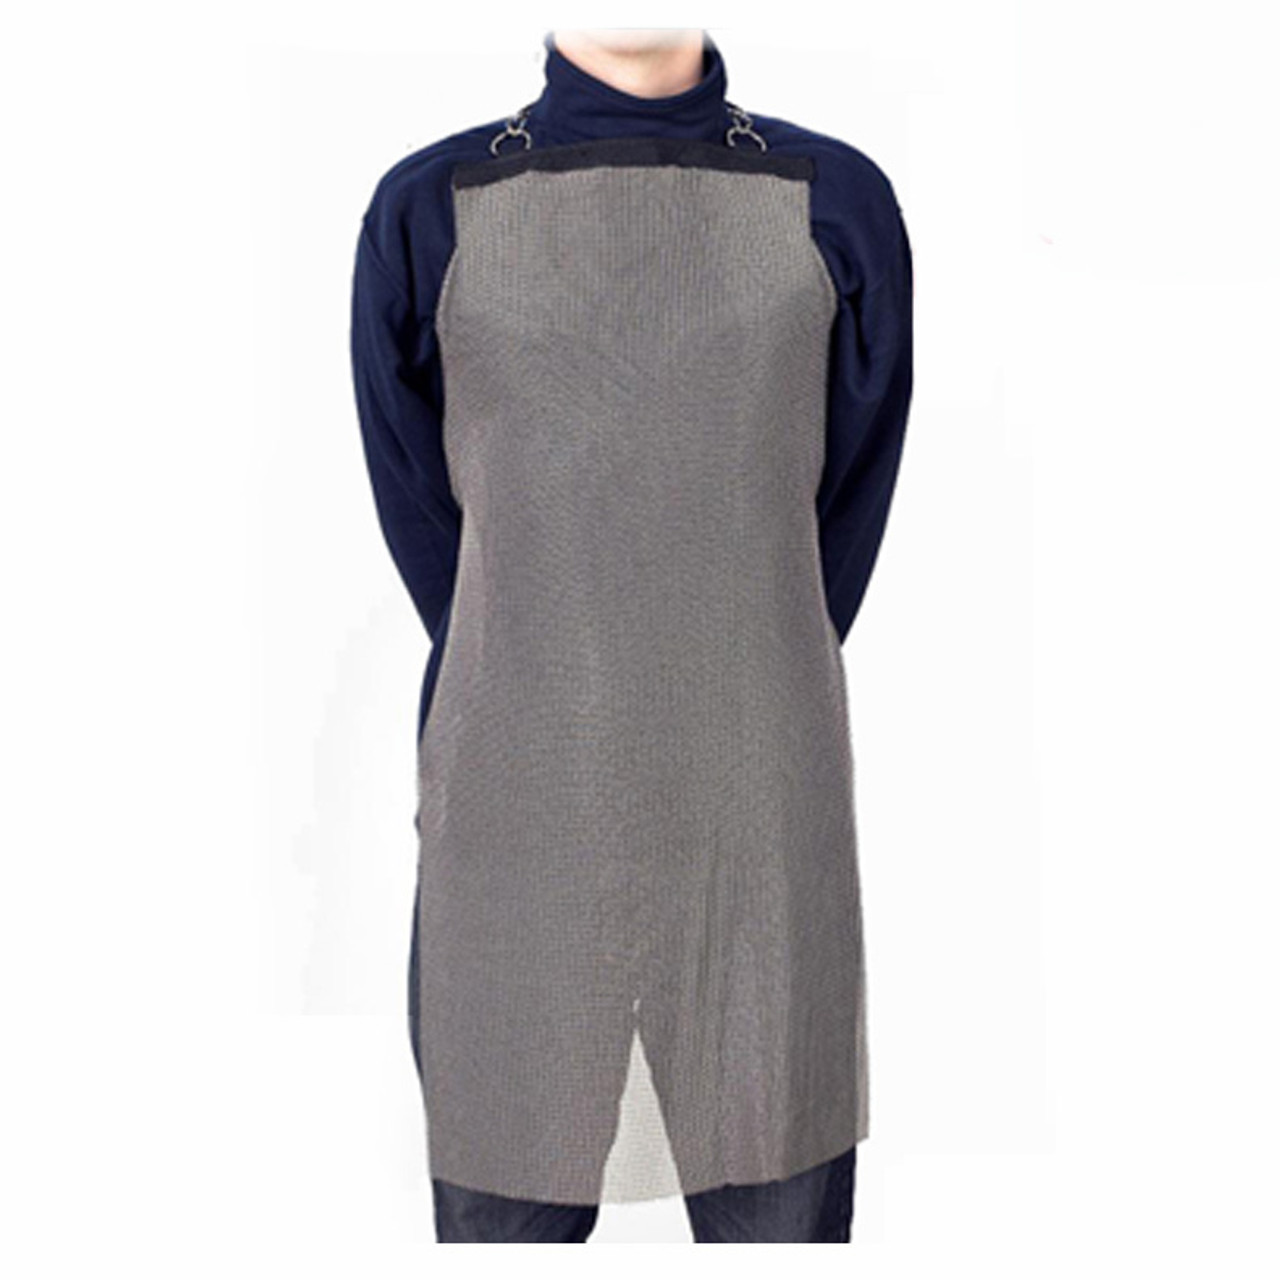 Stainless Steel Mesh Aprons - US Mesh